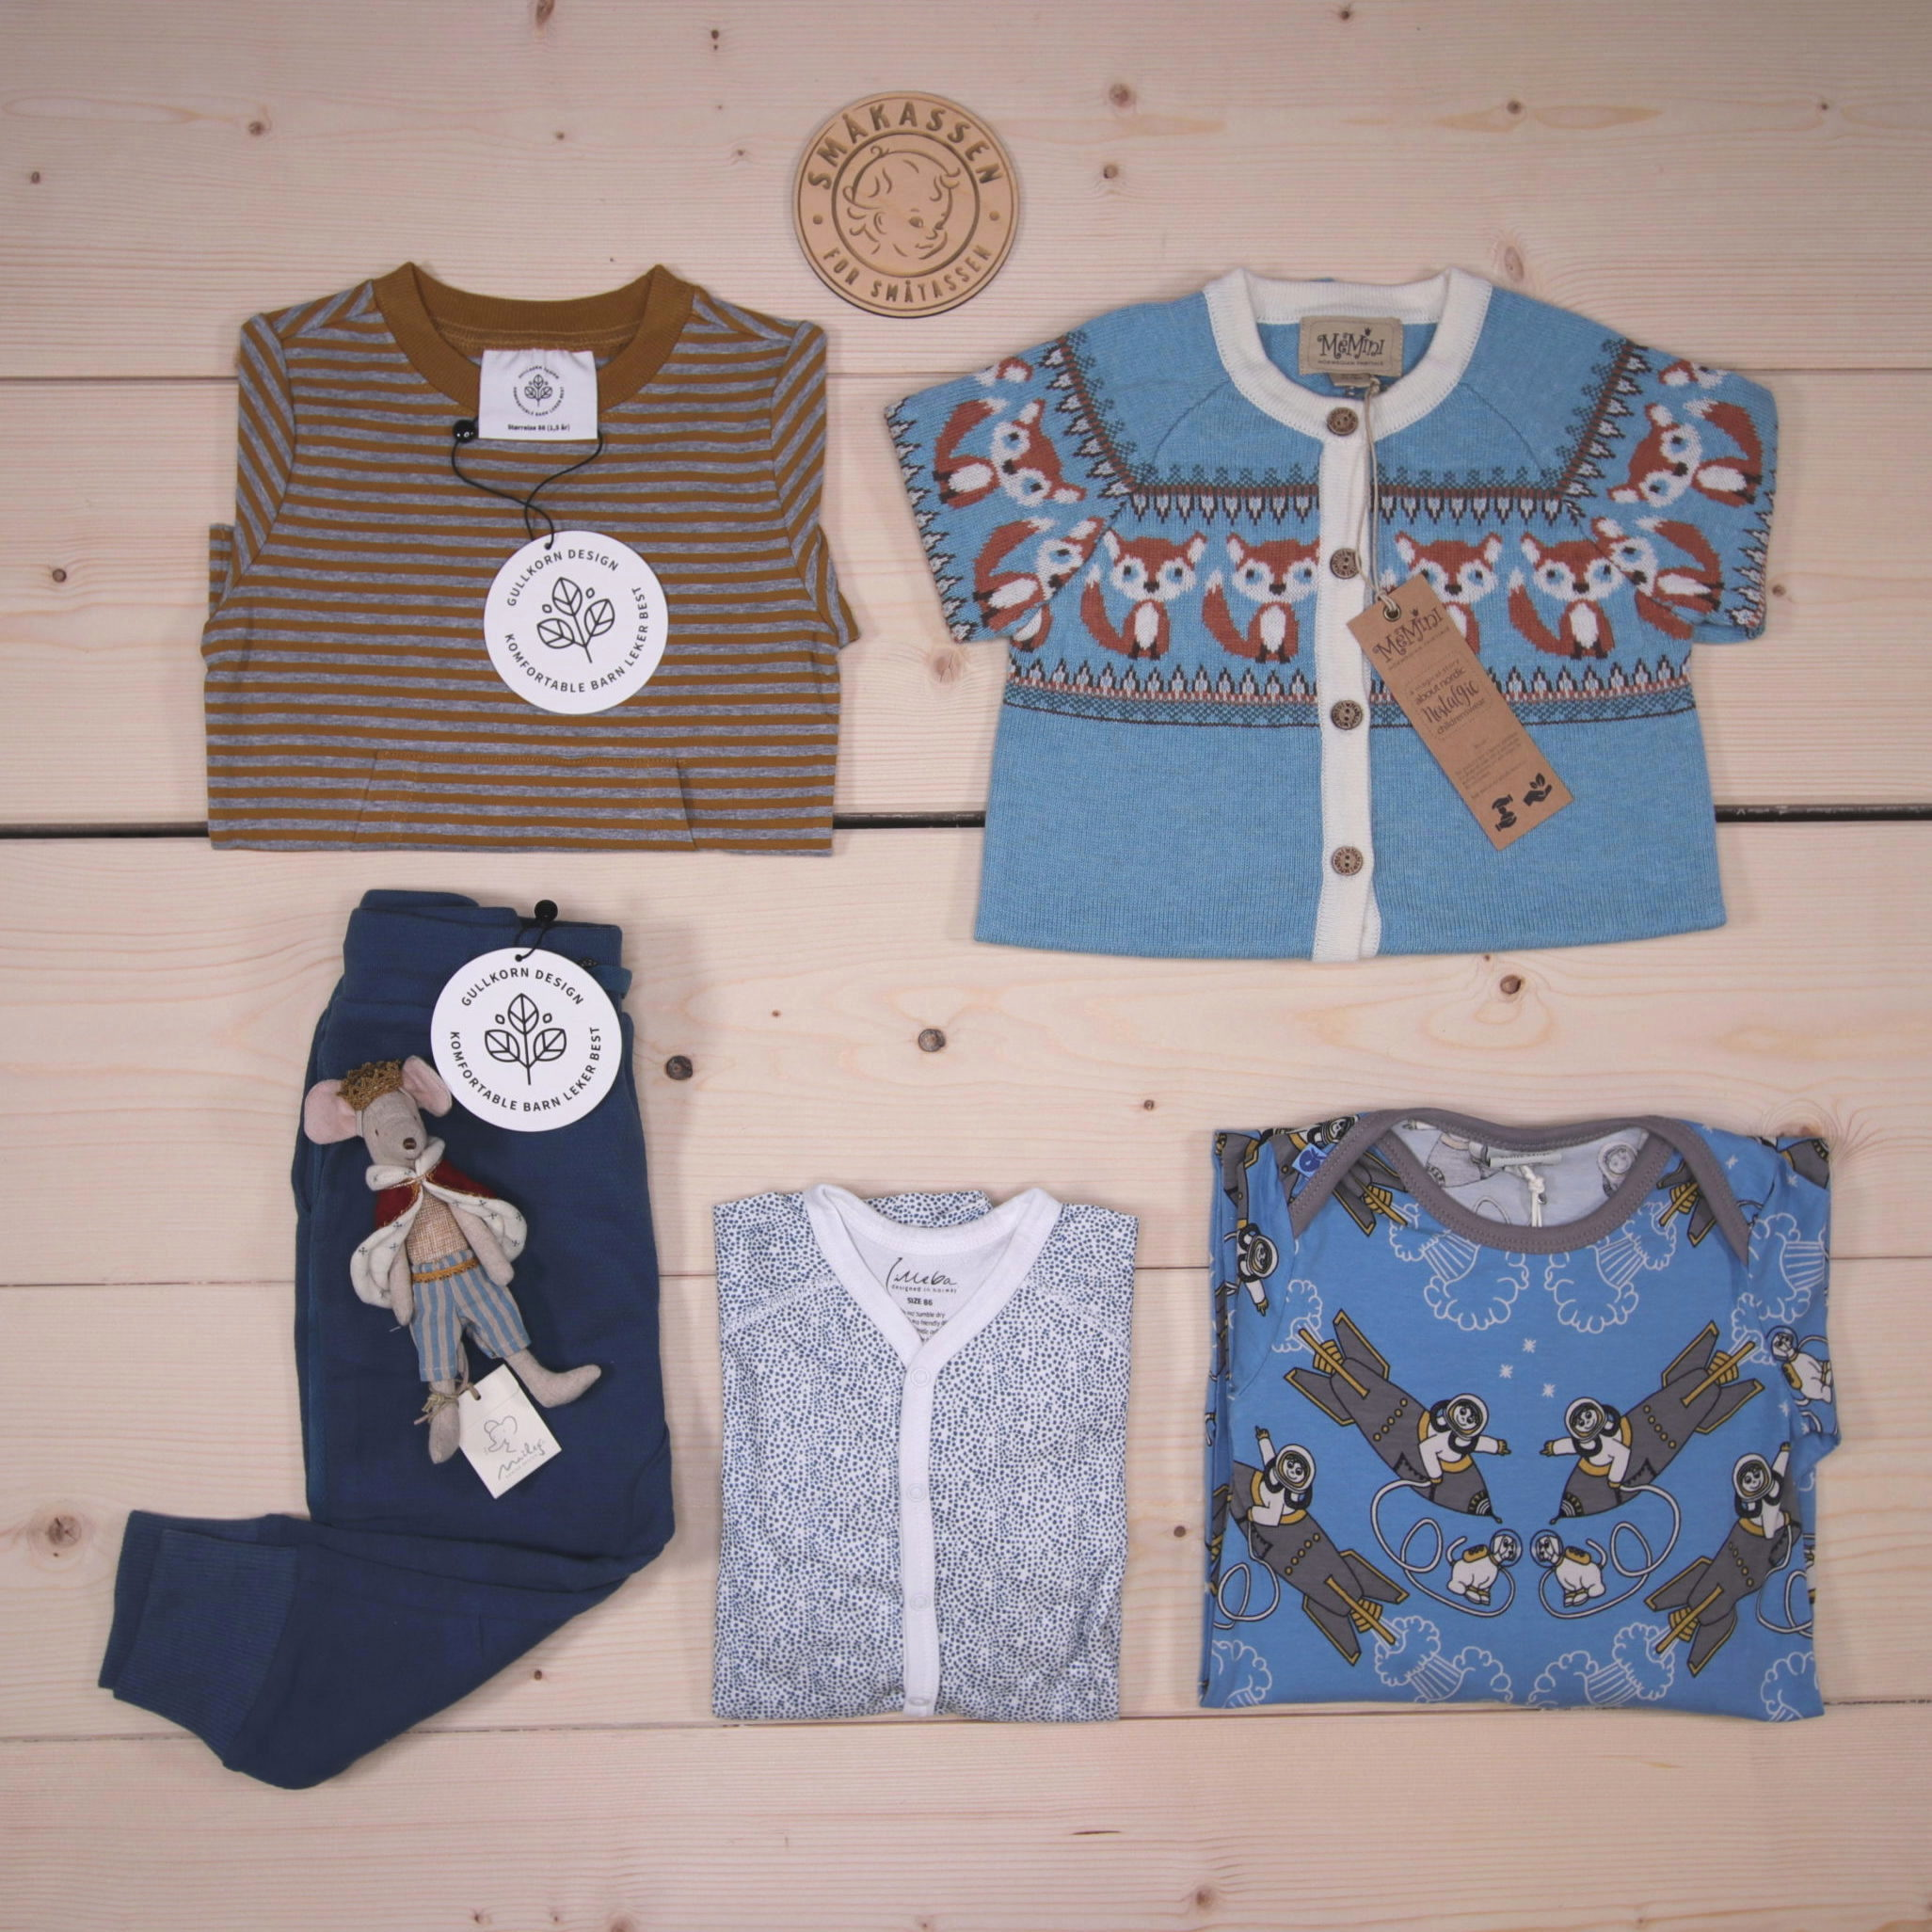 This is Småkassen that we prepared for a boy in the styles cute and cool in size 86.